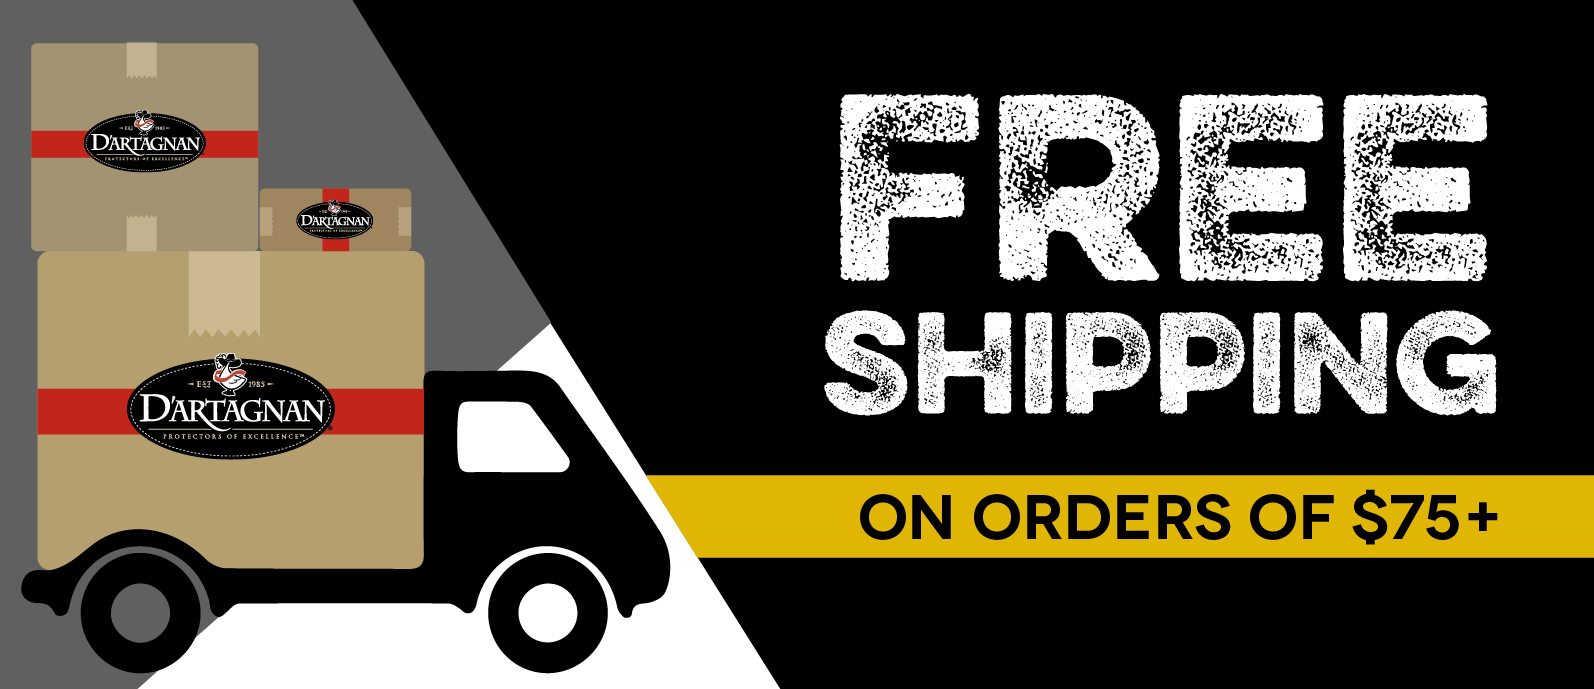 48-hour Free Shipping Event